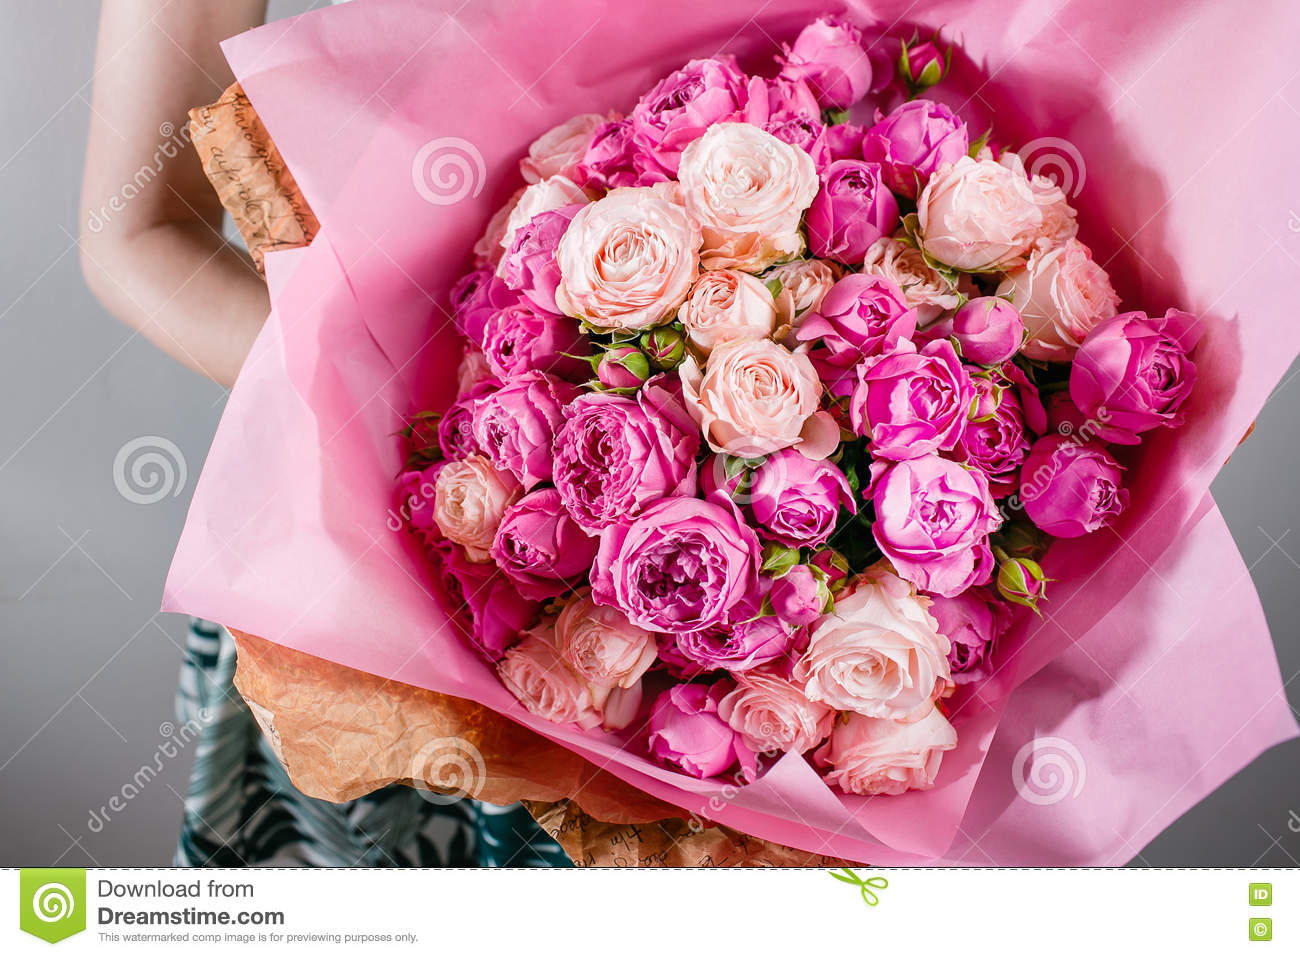 Luxury Bouquets Of Flowers Pink Colour Peonies And Roses In The